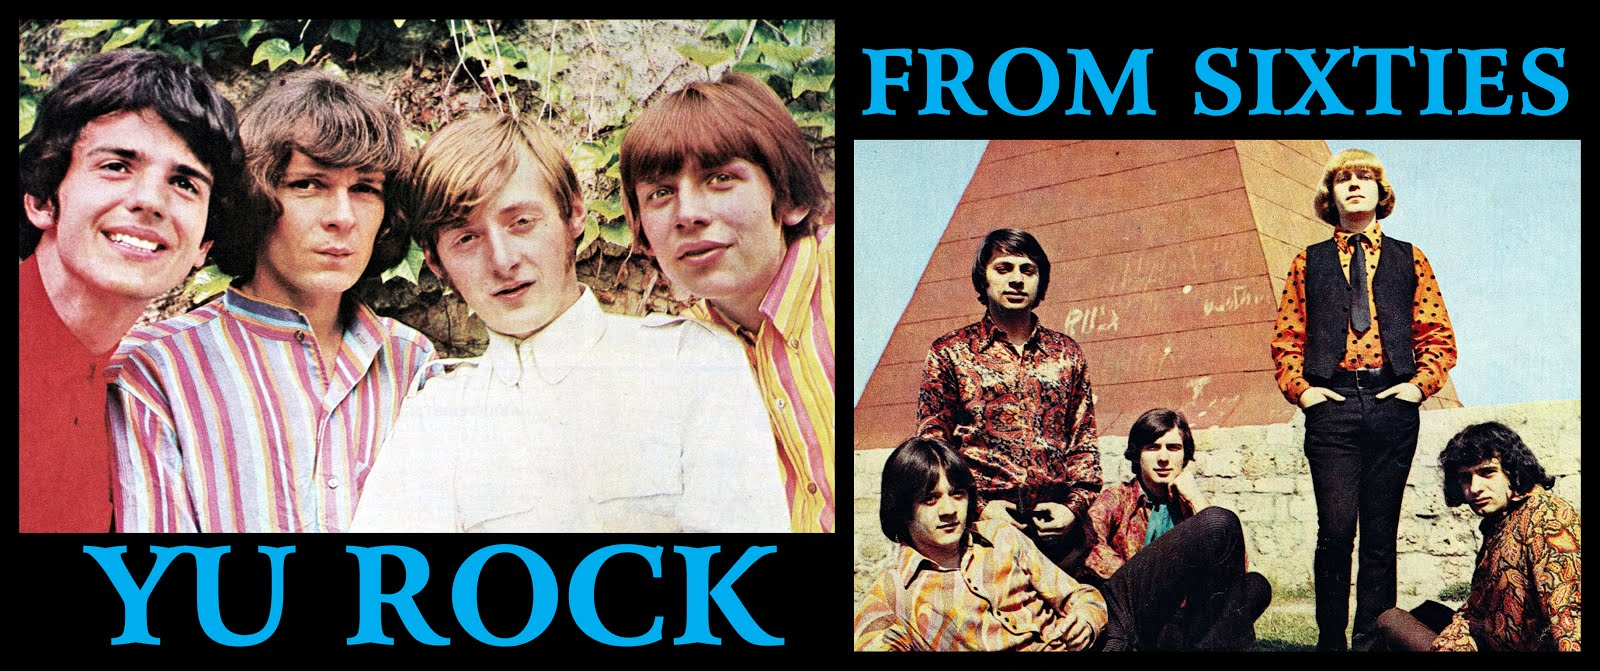 YU ROCK FROM SIXTIES